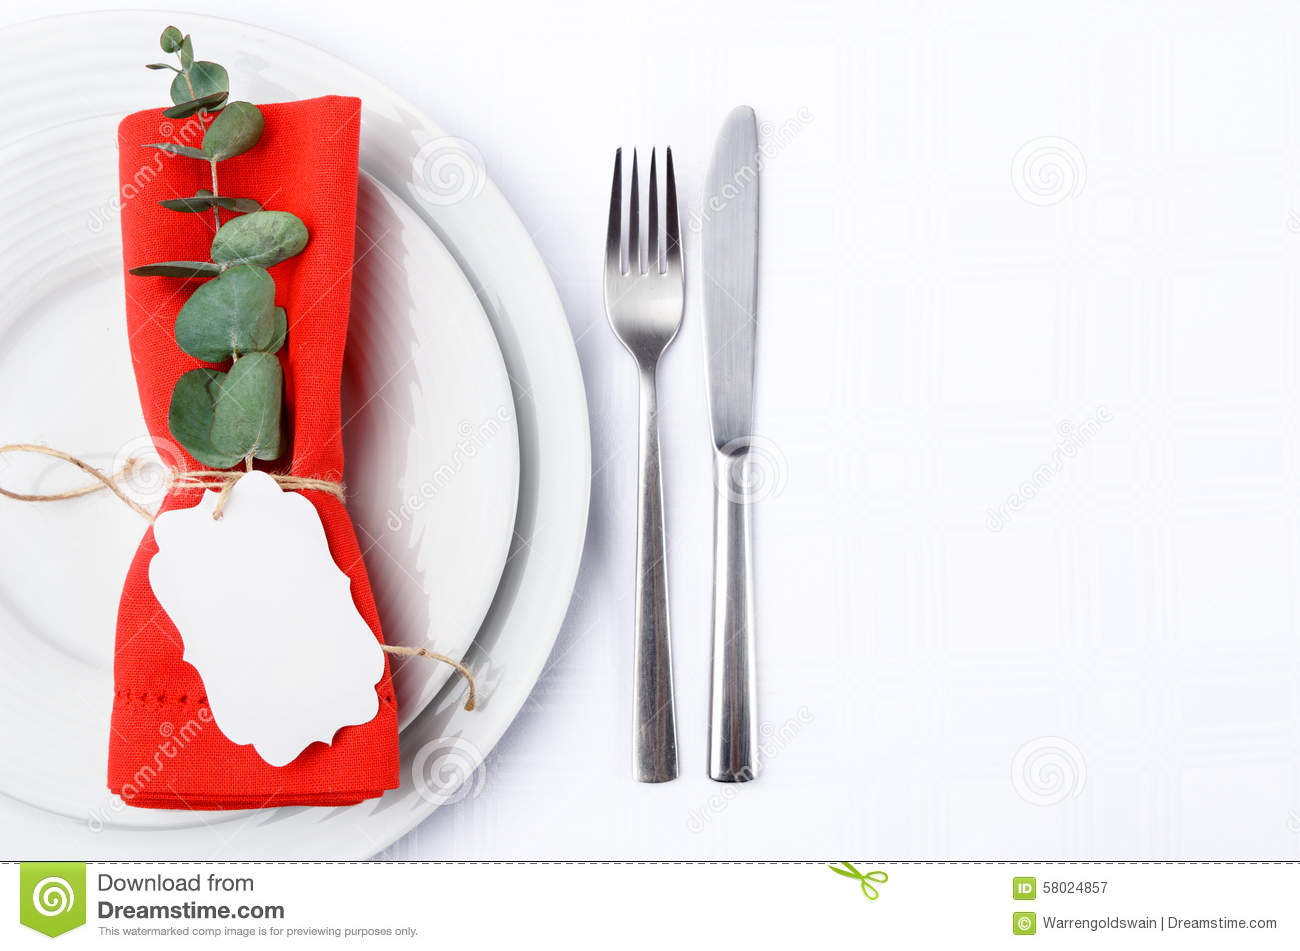 Christmas Dinner Cutlery With White Plates Stock Image - Image of ...